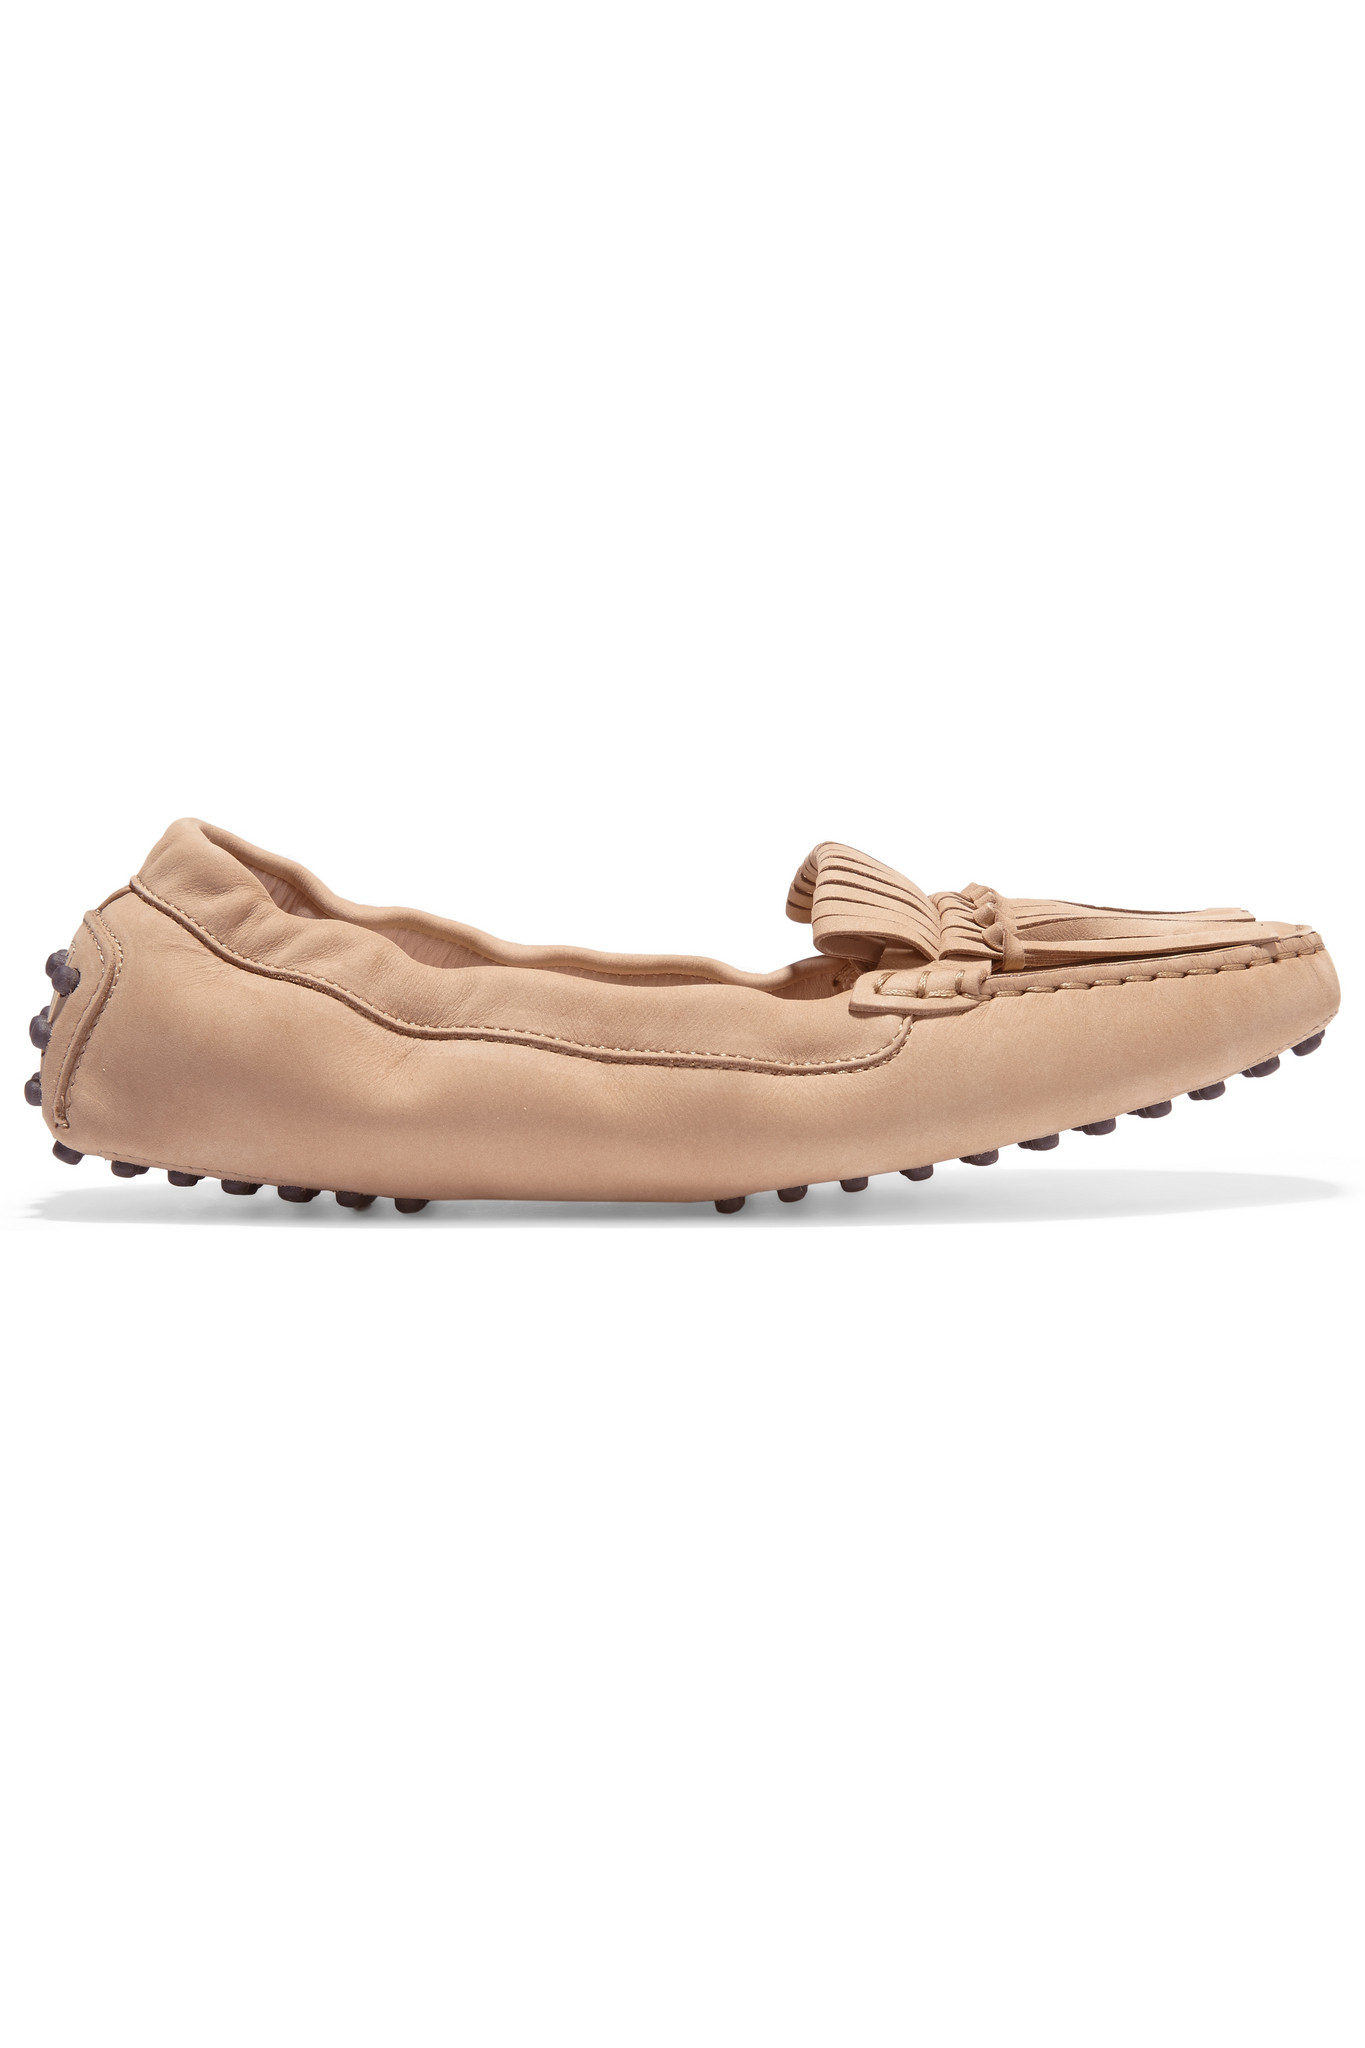 2bd86a04c07 Tod s Gommino Fringed Leather Loafers in Natural - Lyst